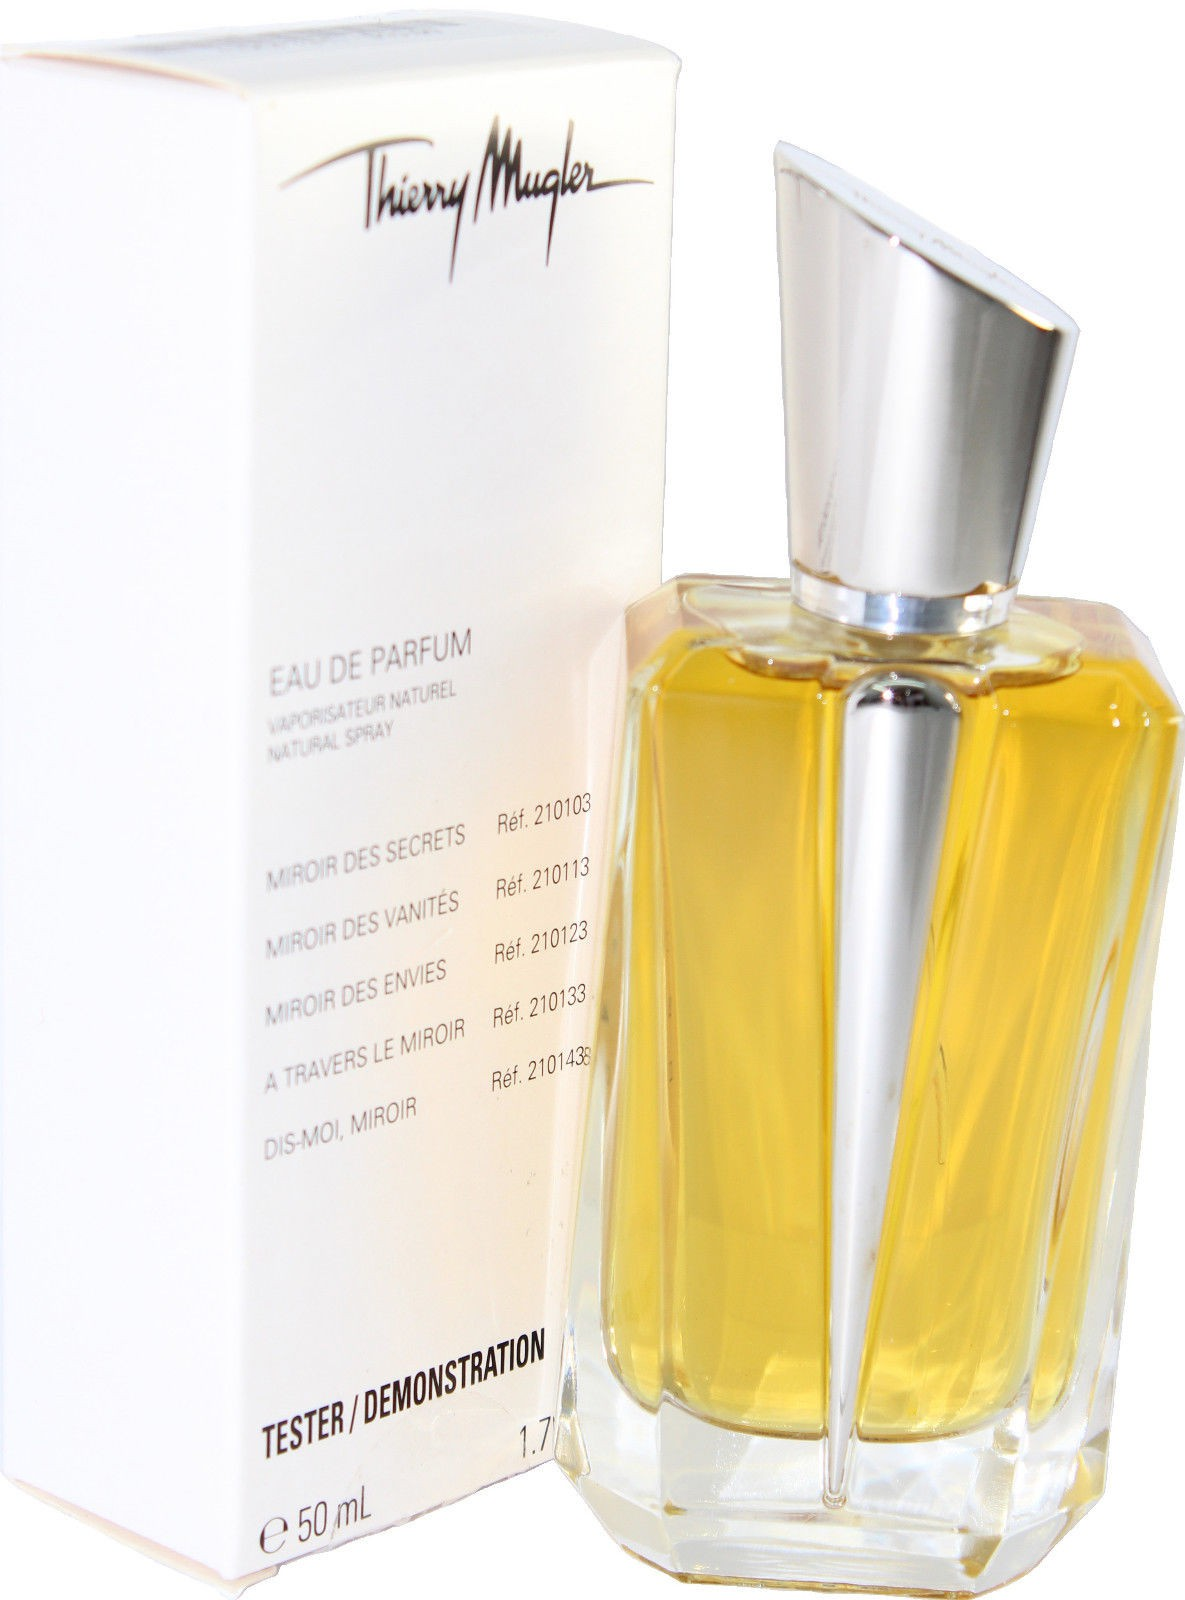 mugler travers le miroir 2008